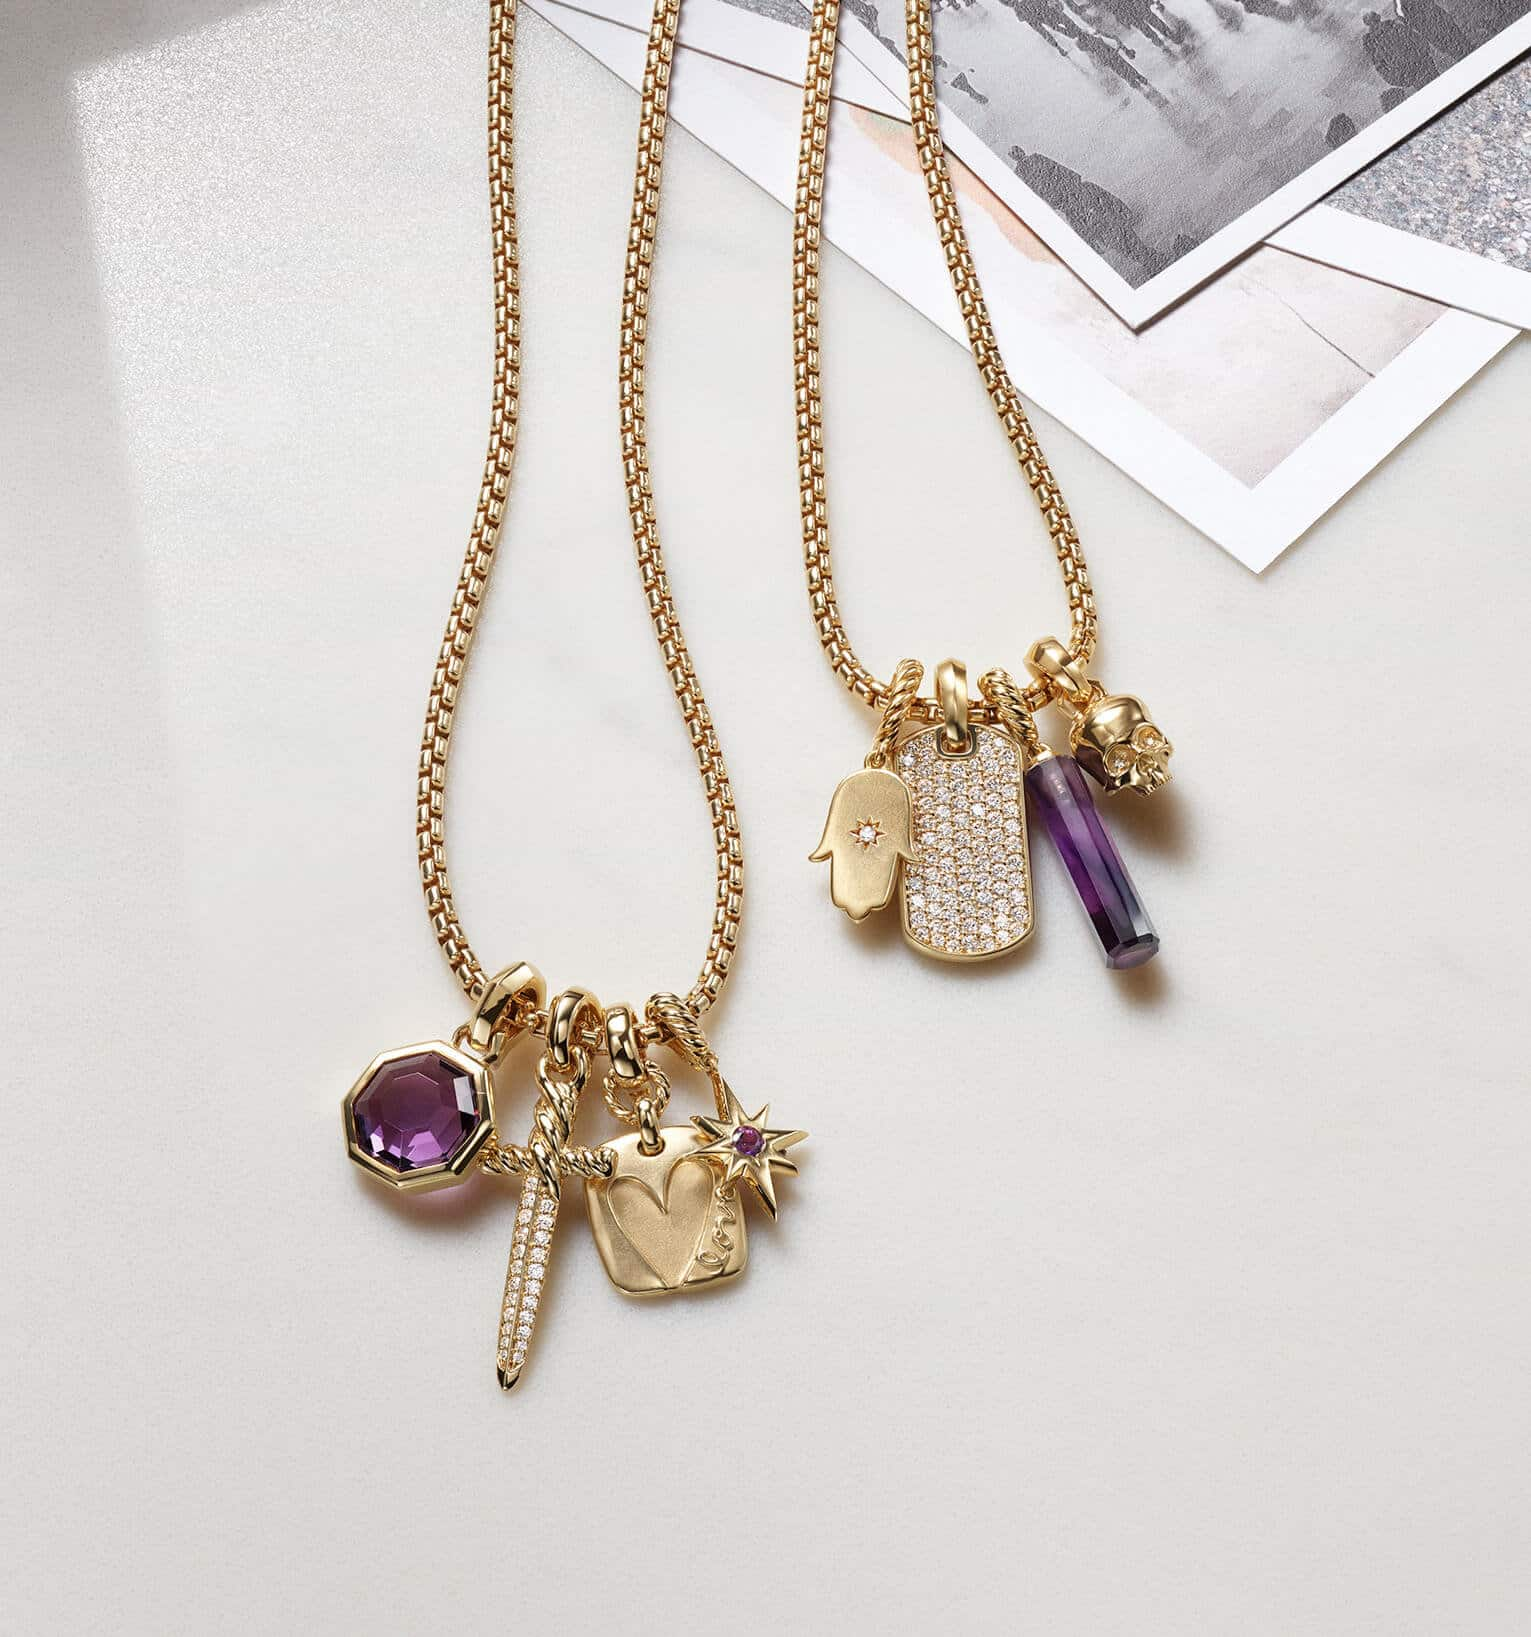 A color photograph shows two David Yurman chain necklaces strung with four amulet pendants each. The women's jewelry is crafted from 18K yellow gold with or without pavé diamonds and amethyst. The pendants come in various shapes such as a tag, octagon, dagger, star, hamsa hand or skull. The jewelry is lying on a white background with dark shadows near three black-and-white photographs